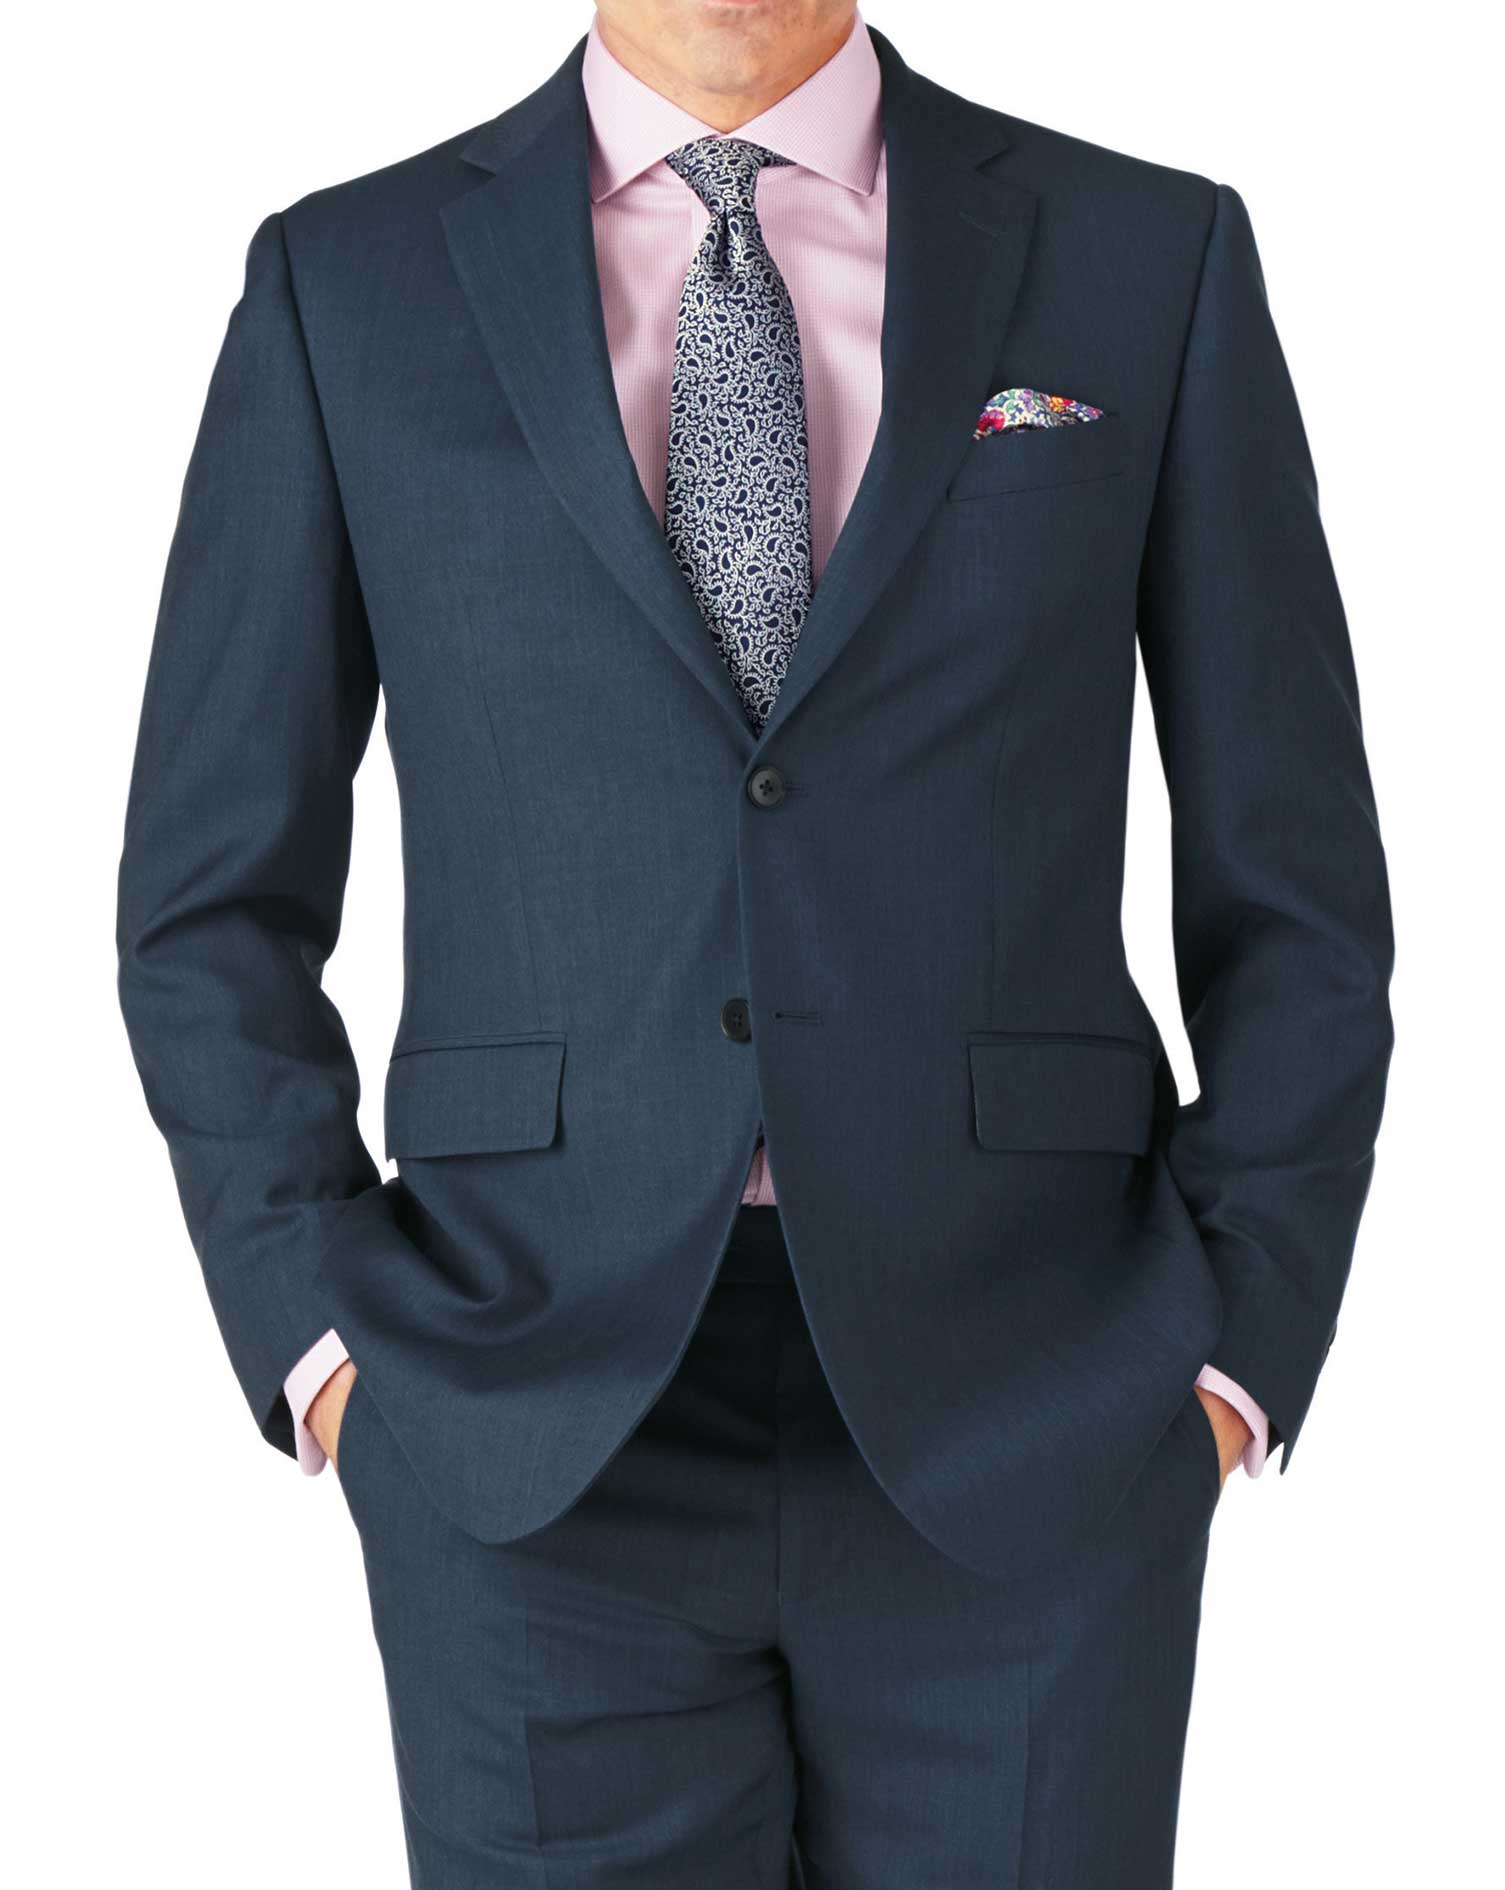 Blue Classic Fit Twill Business Suit Wool Jacket Size 44 Short by Charles Tyrwhitt